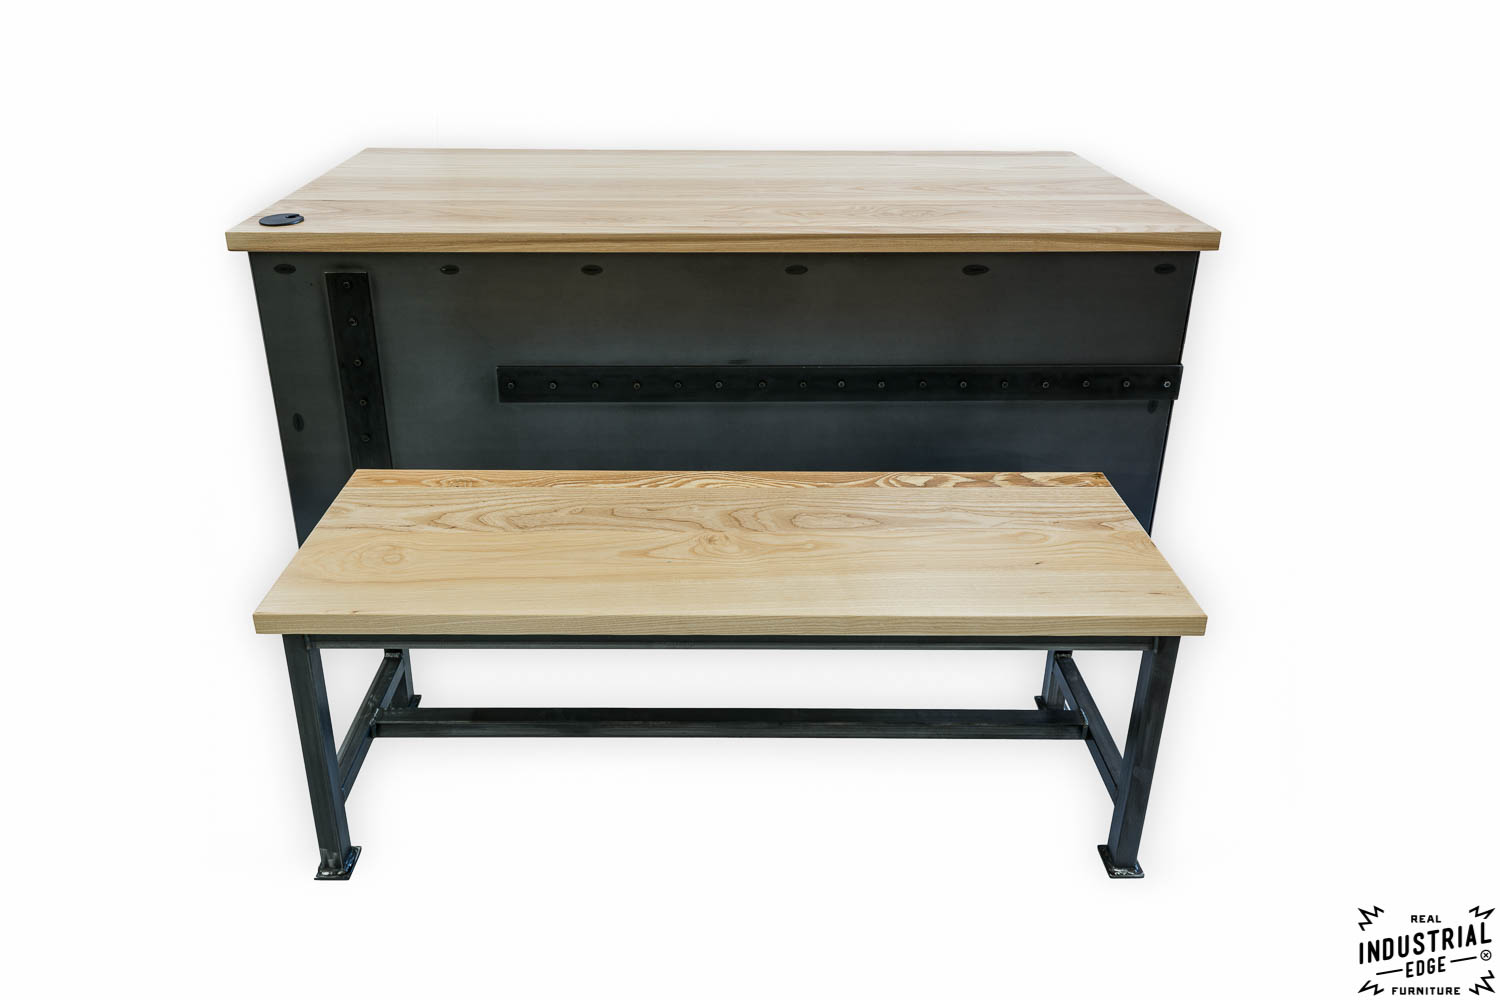 Ash amp steel desk with client bench real industrial edge furniture